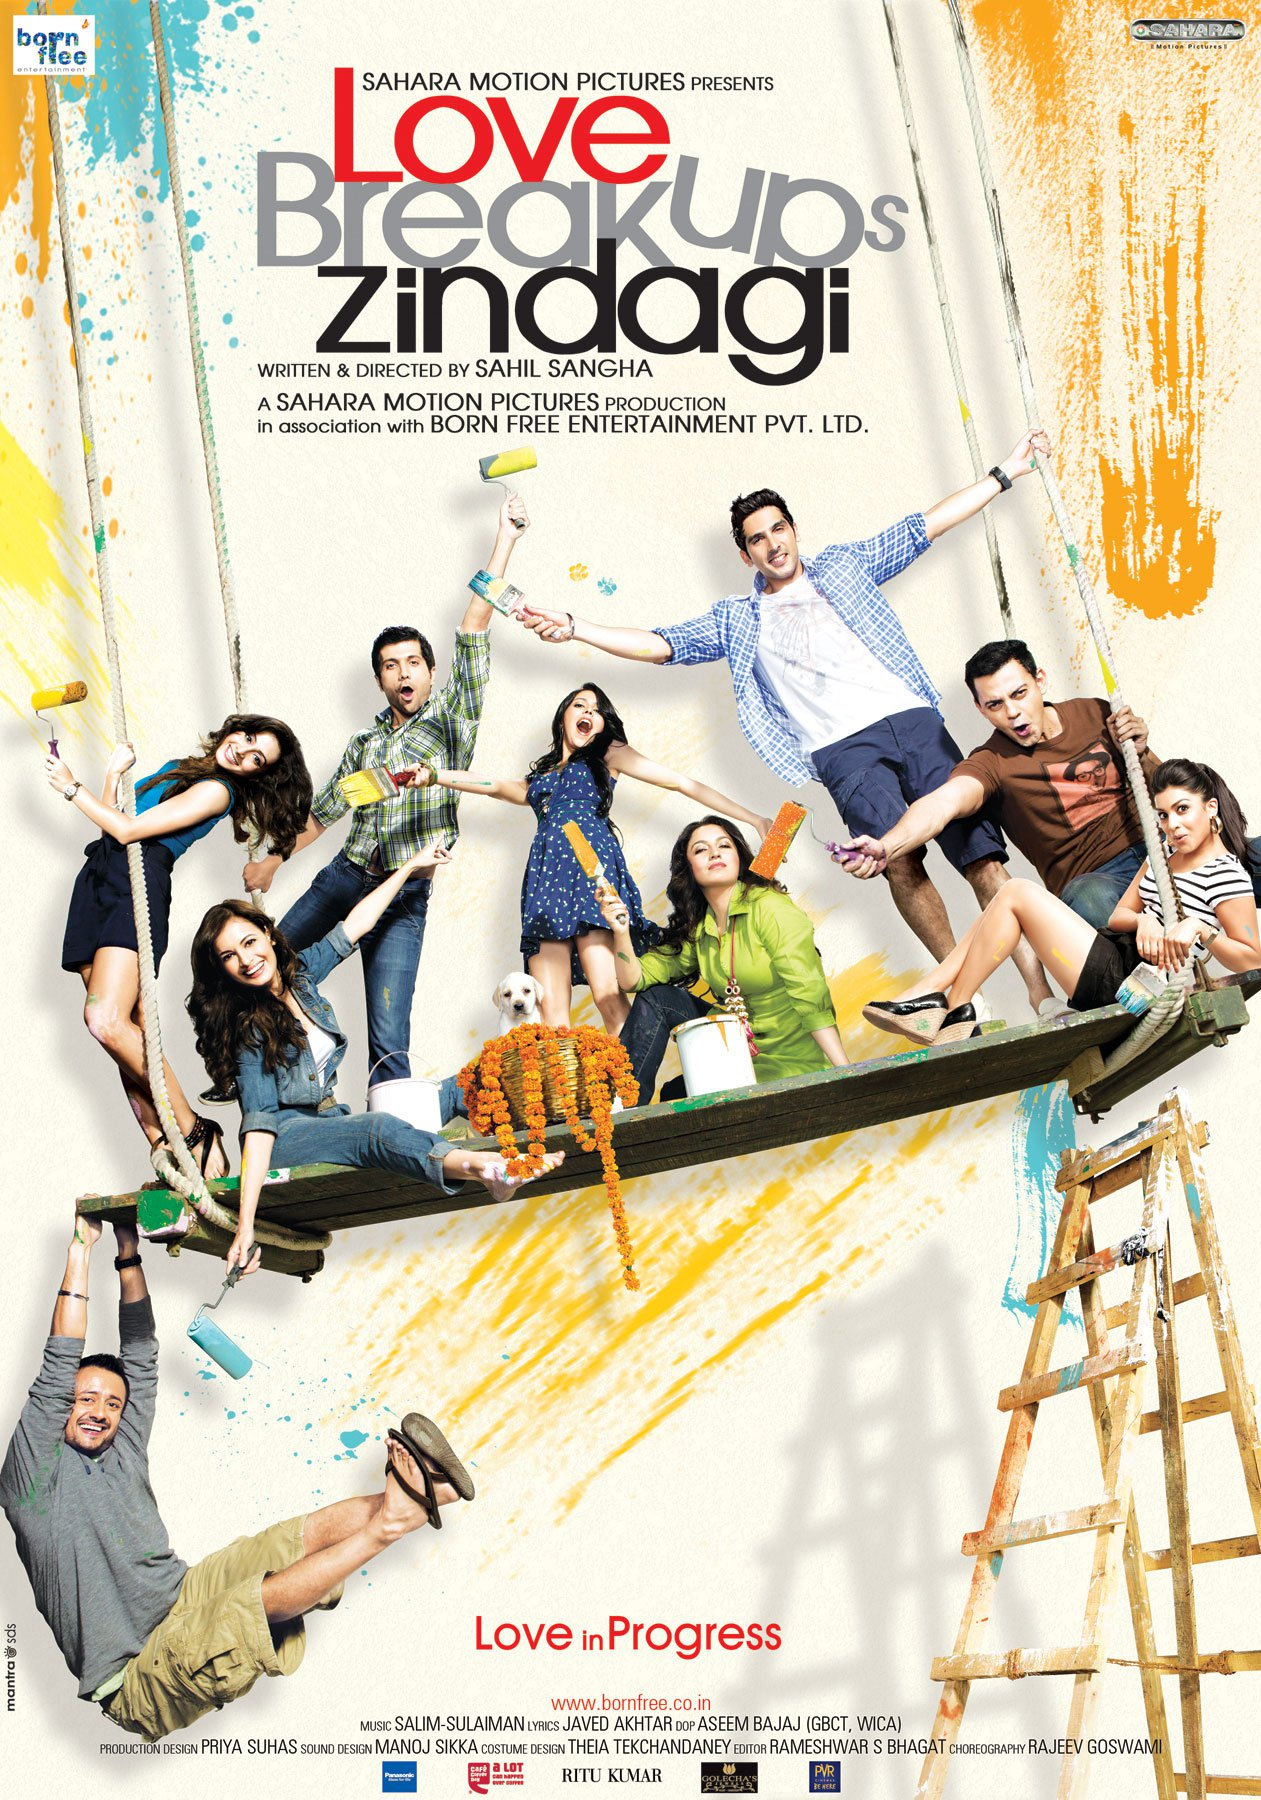 11sep LBZ musicreview Love BreakUps Zindagi Music Review